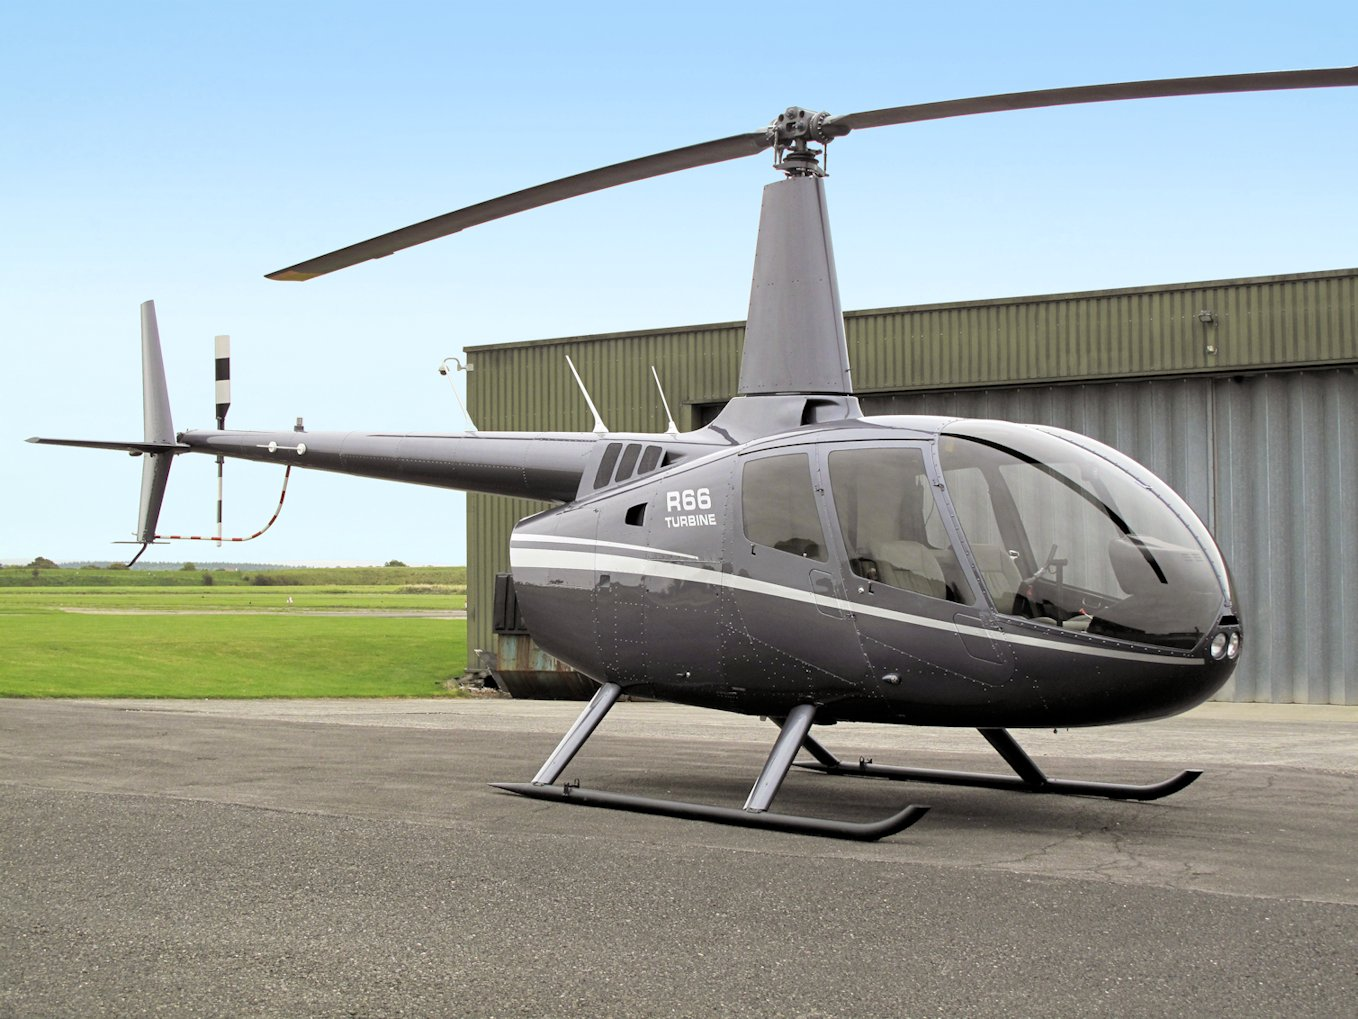 used helicopter for sale with Used Robinson R66 Turbine 2011 2 on Used Robinson R66 Turbine 2011 2 moreover The Ov 10 Bronco Ramona Air Attack 330 besides Most Expensive Helicopters In The World moreover Cgs Hawk Classic Two Seat moreover Top Gun Days.